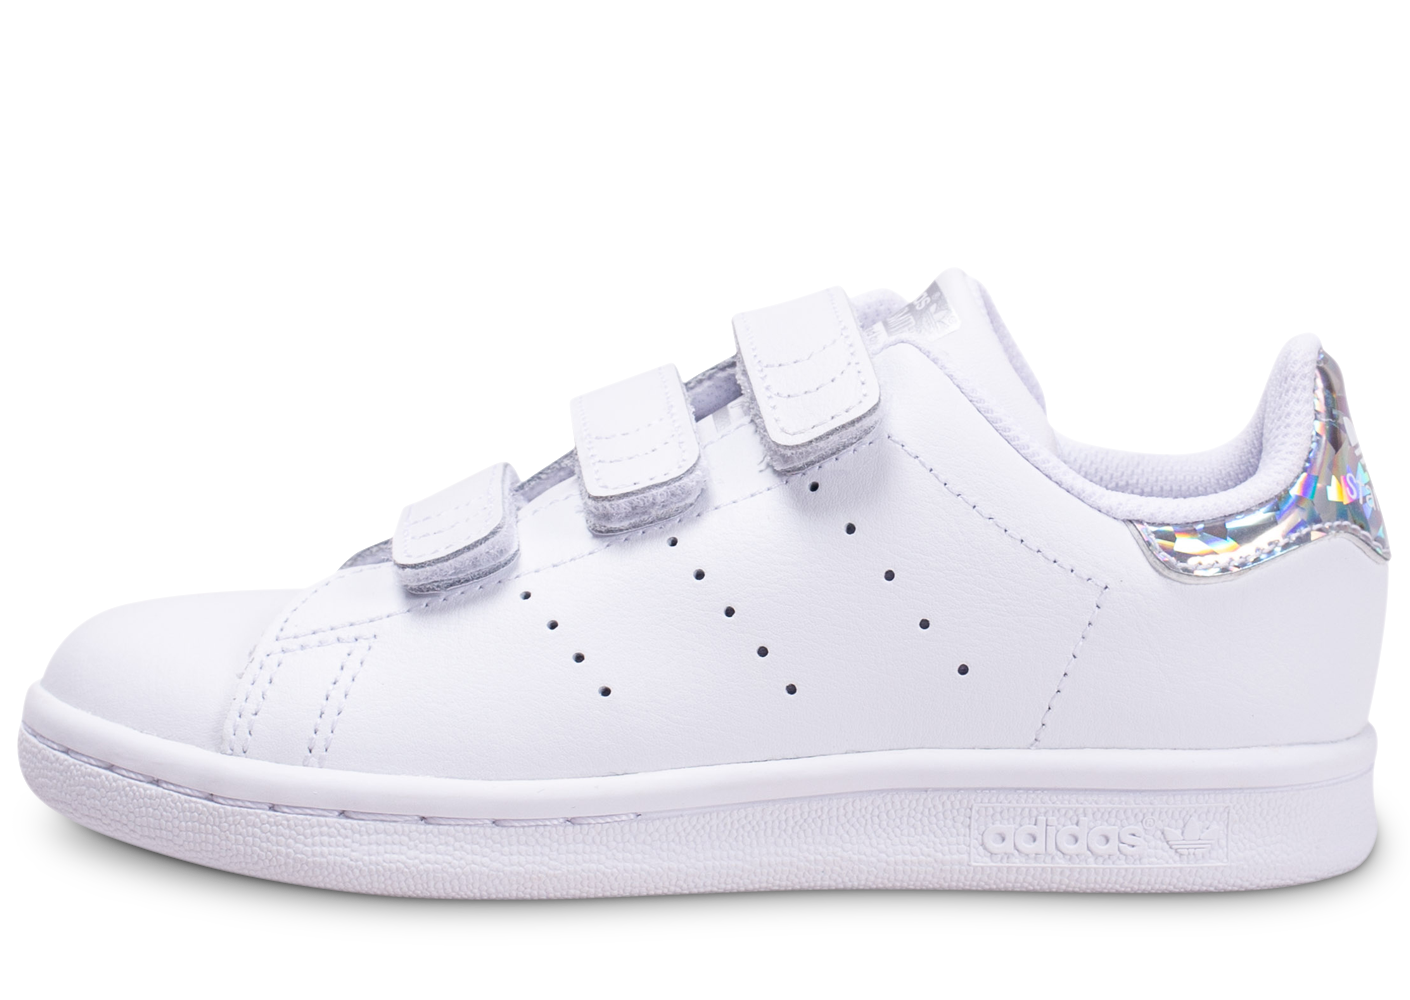 revendeur 99522 89711 adidas stan smith jusqu'à - 63 % - Pureshopping